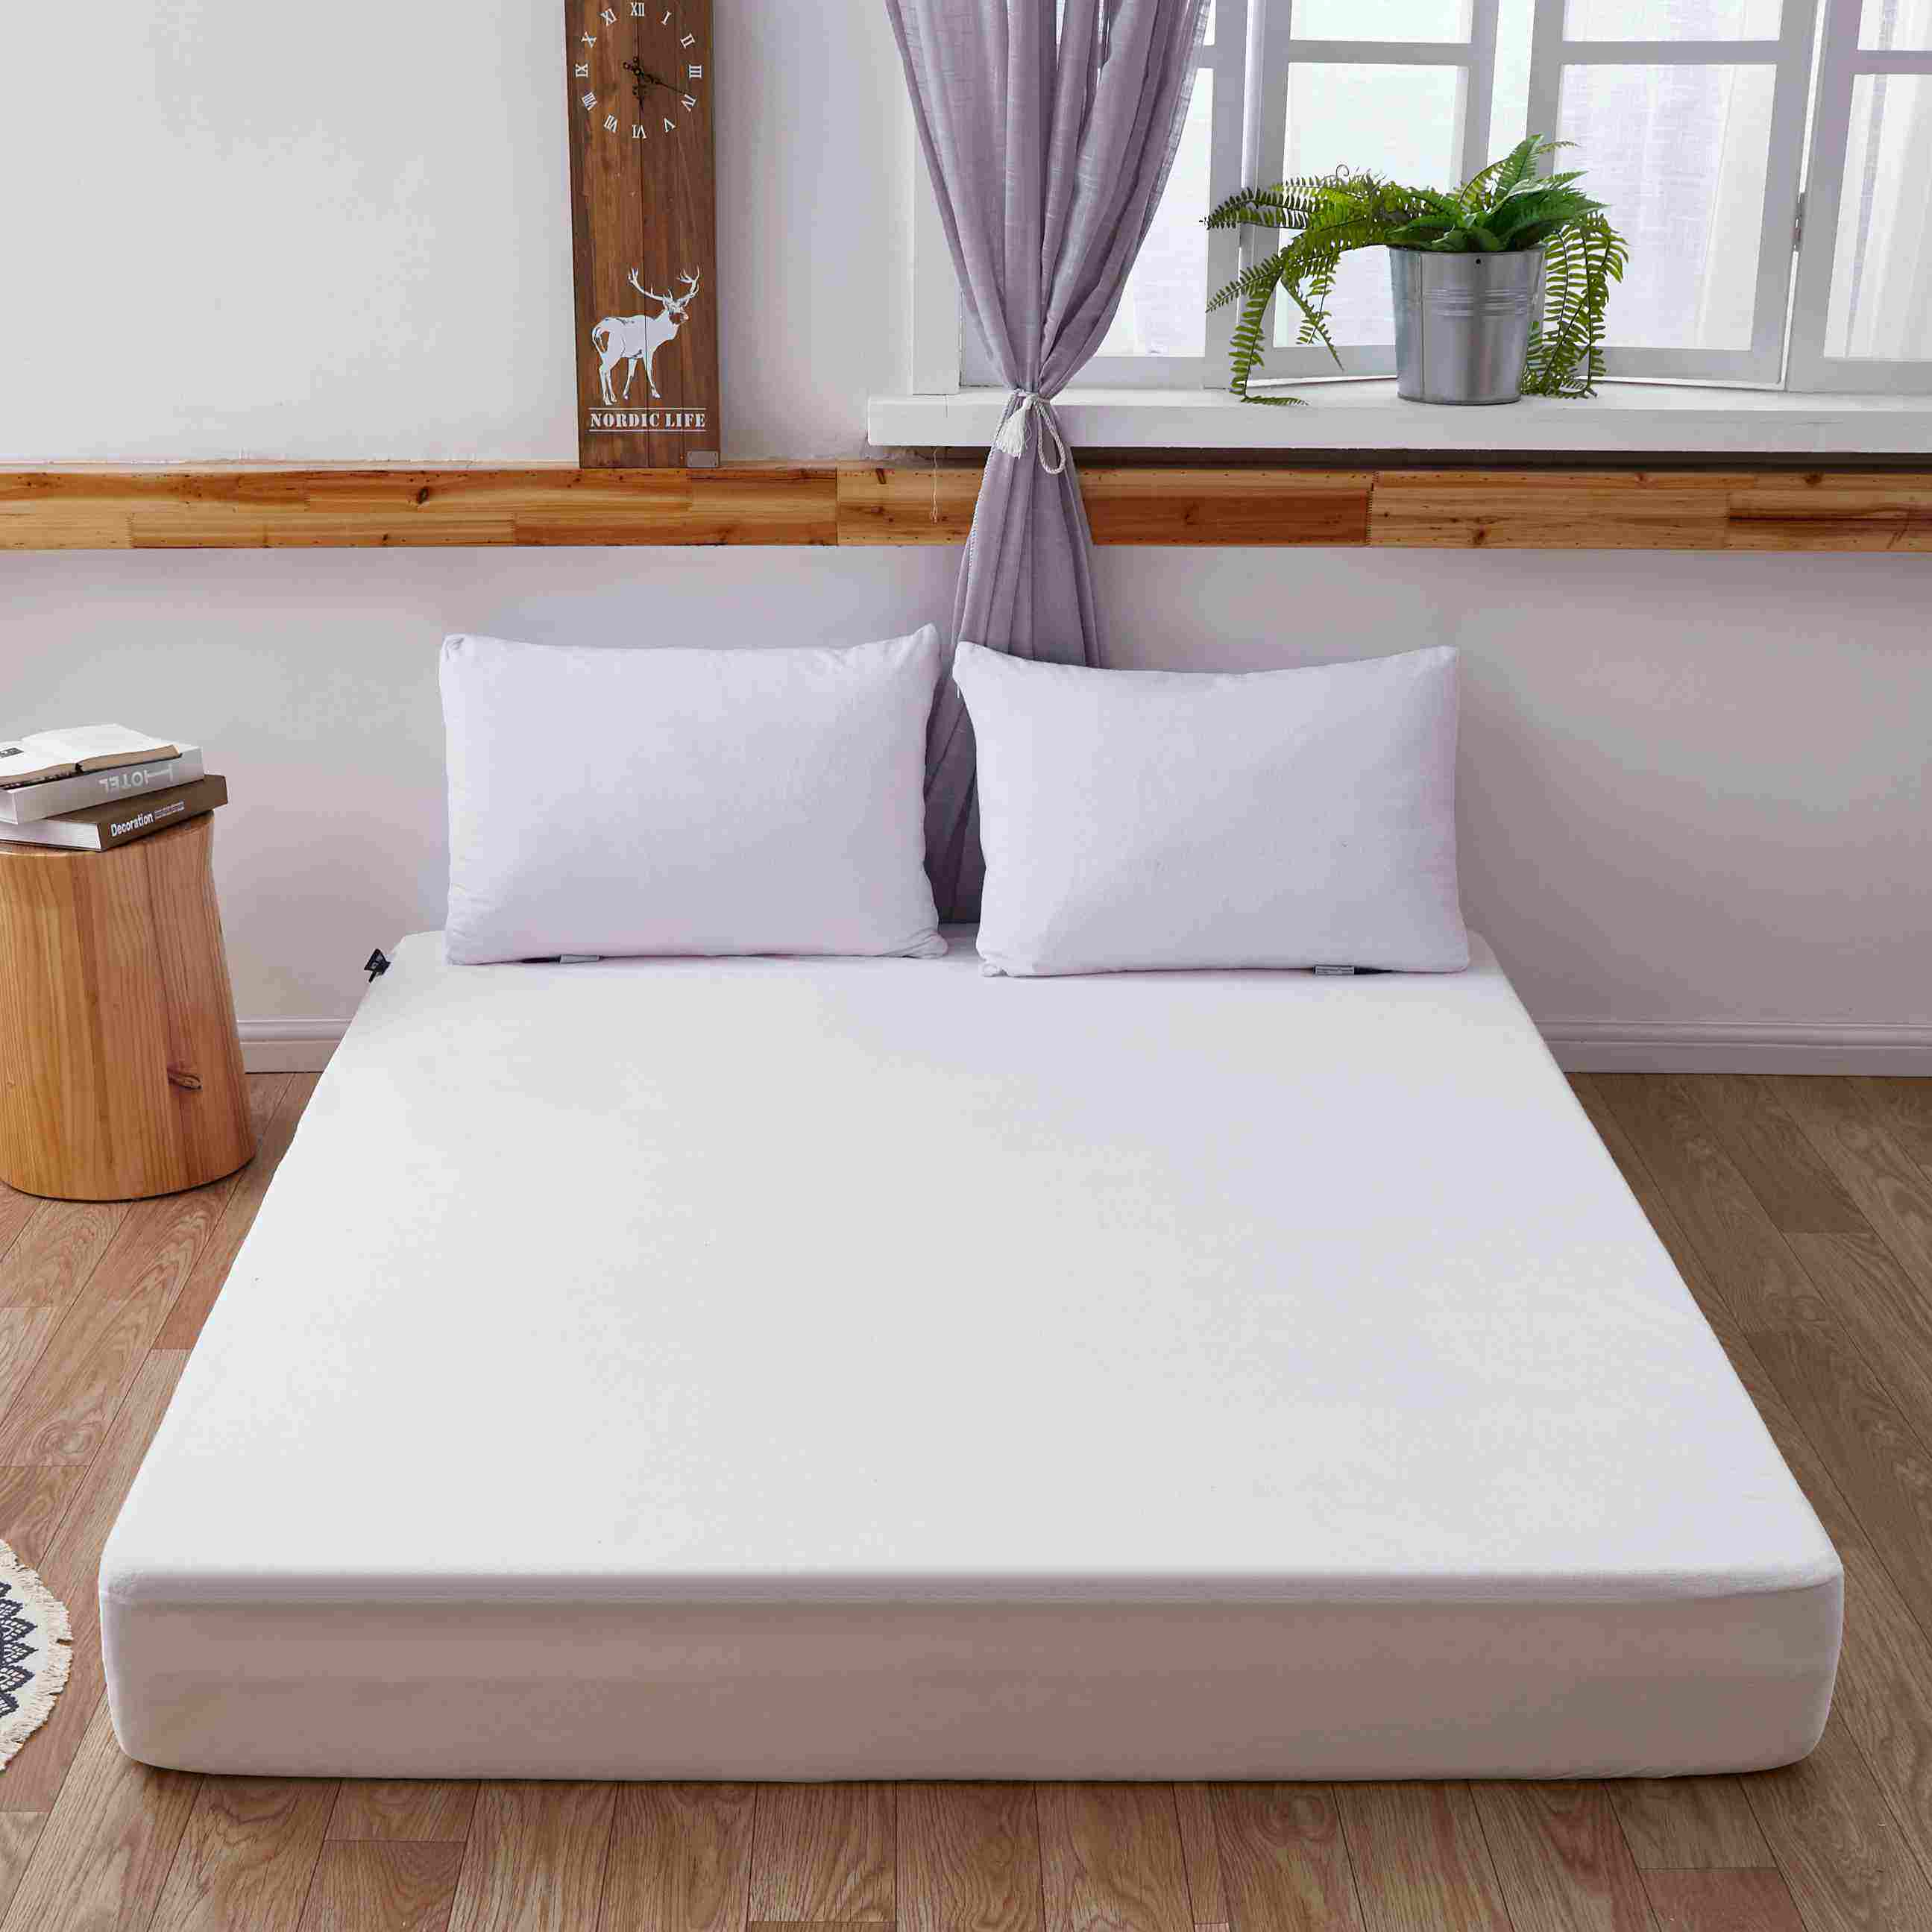 Factory Price Terry cloth Sheet Hotel Luxury Bed Sheets Extra Soft Easy Fit Breathable Wrinkle free